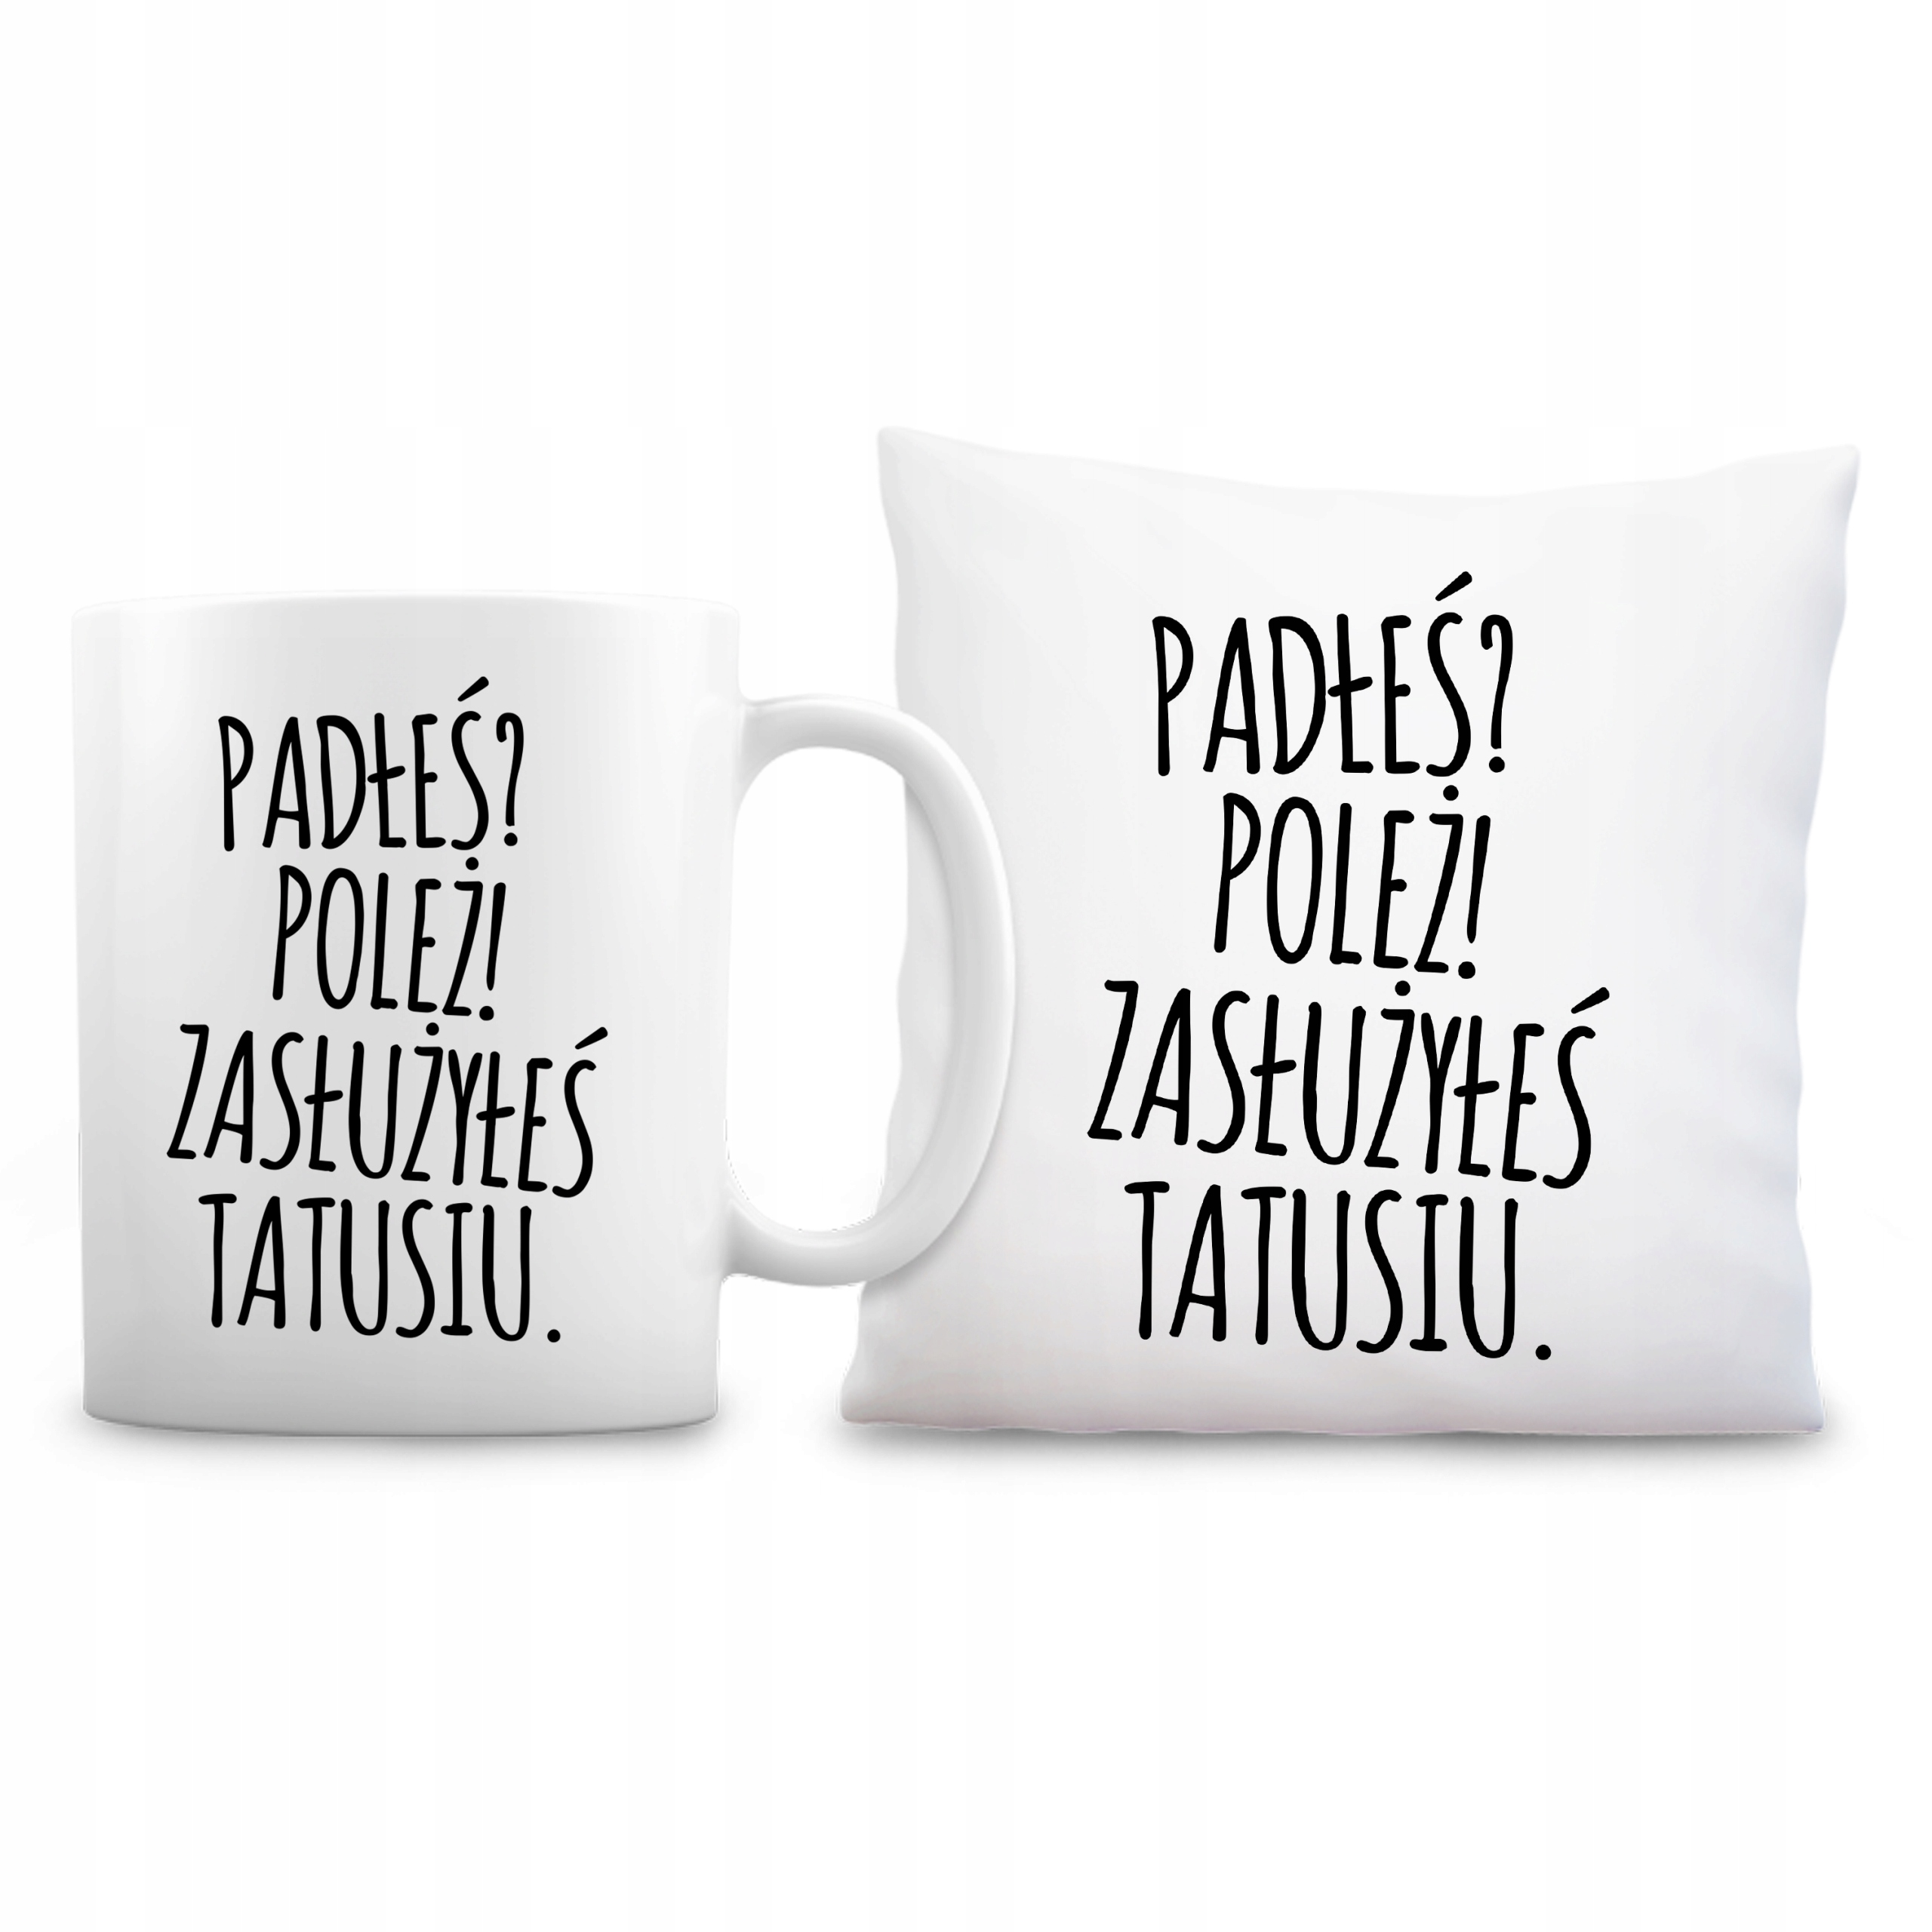 Item SET FATHER'S DAY DAD PILLOW + MUG AS A GIFT